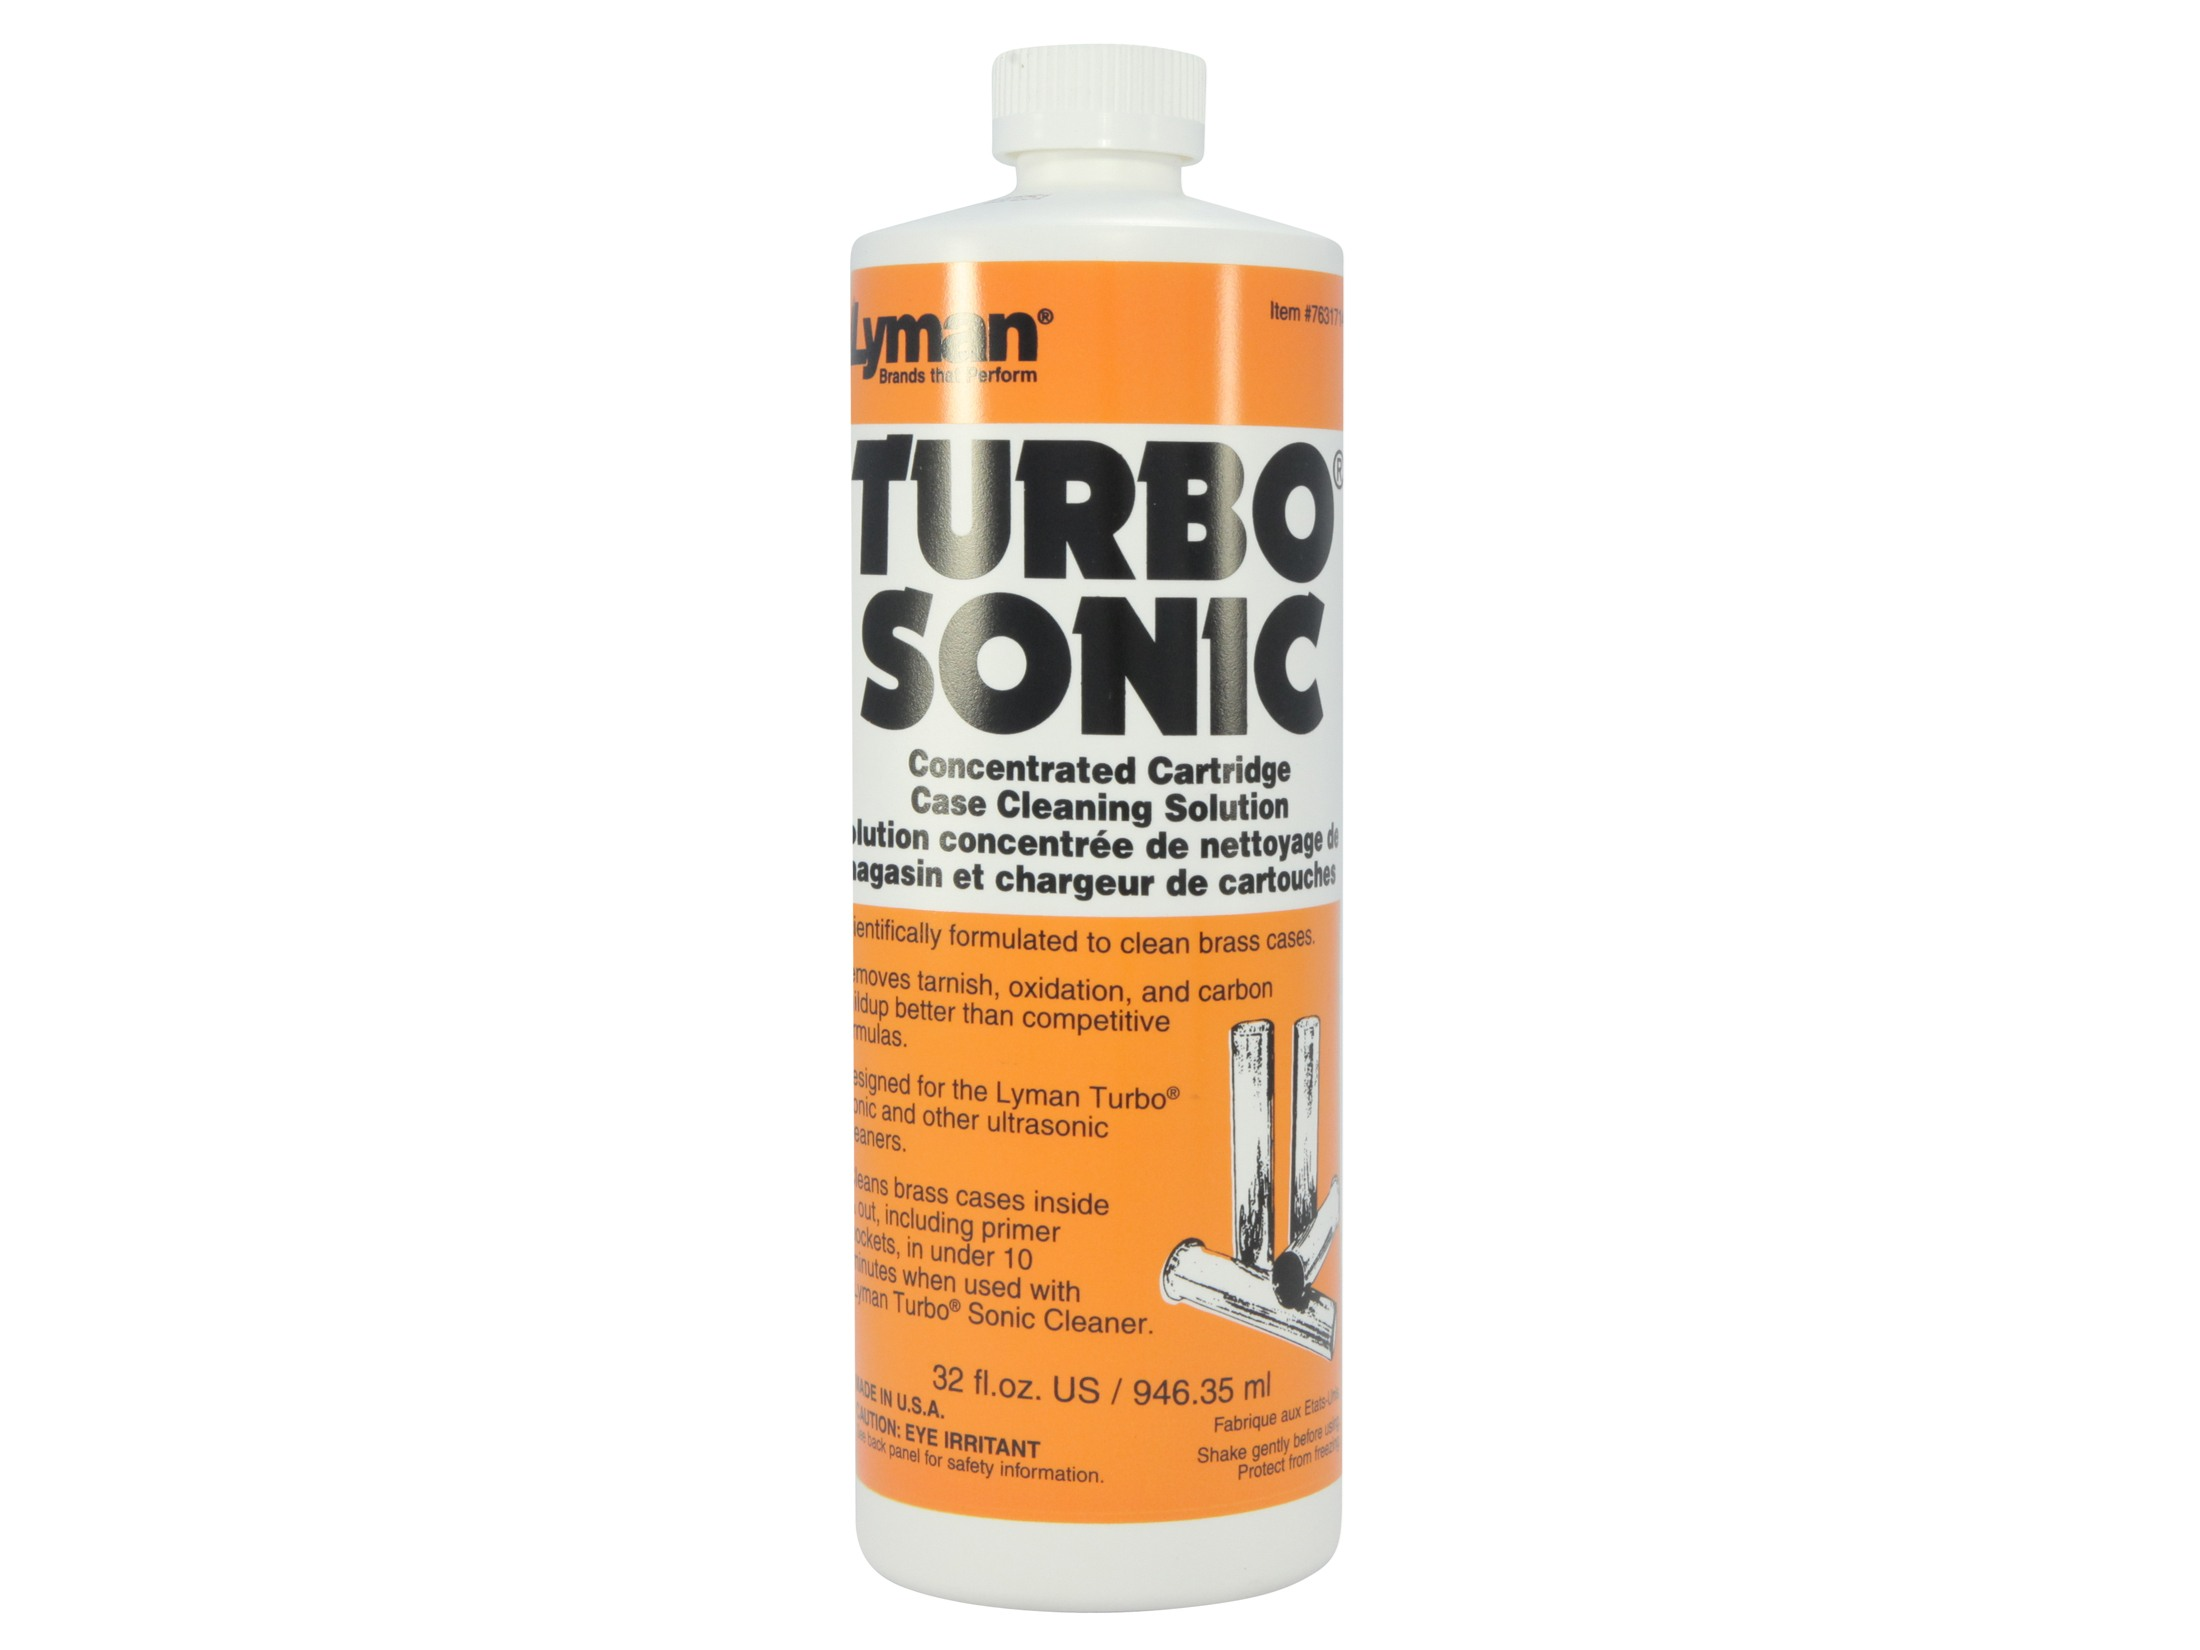 Lyman-Turbo-Sonic-Ultrasonic-Case-Cleaning-Solution-Liquid.jpg